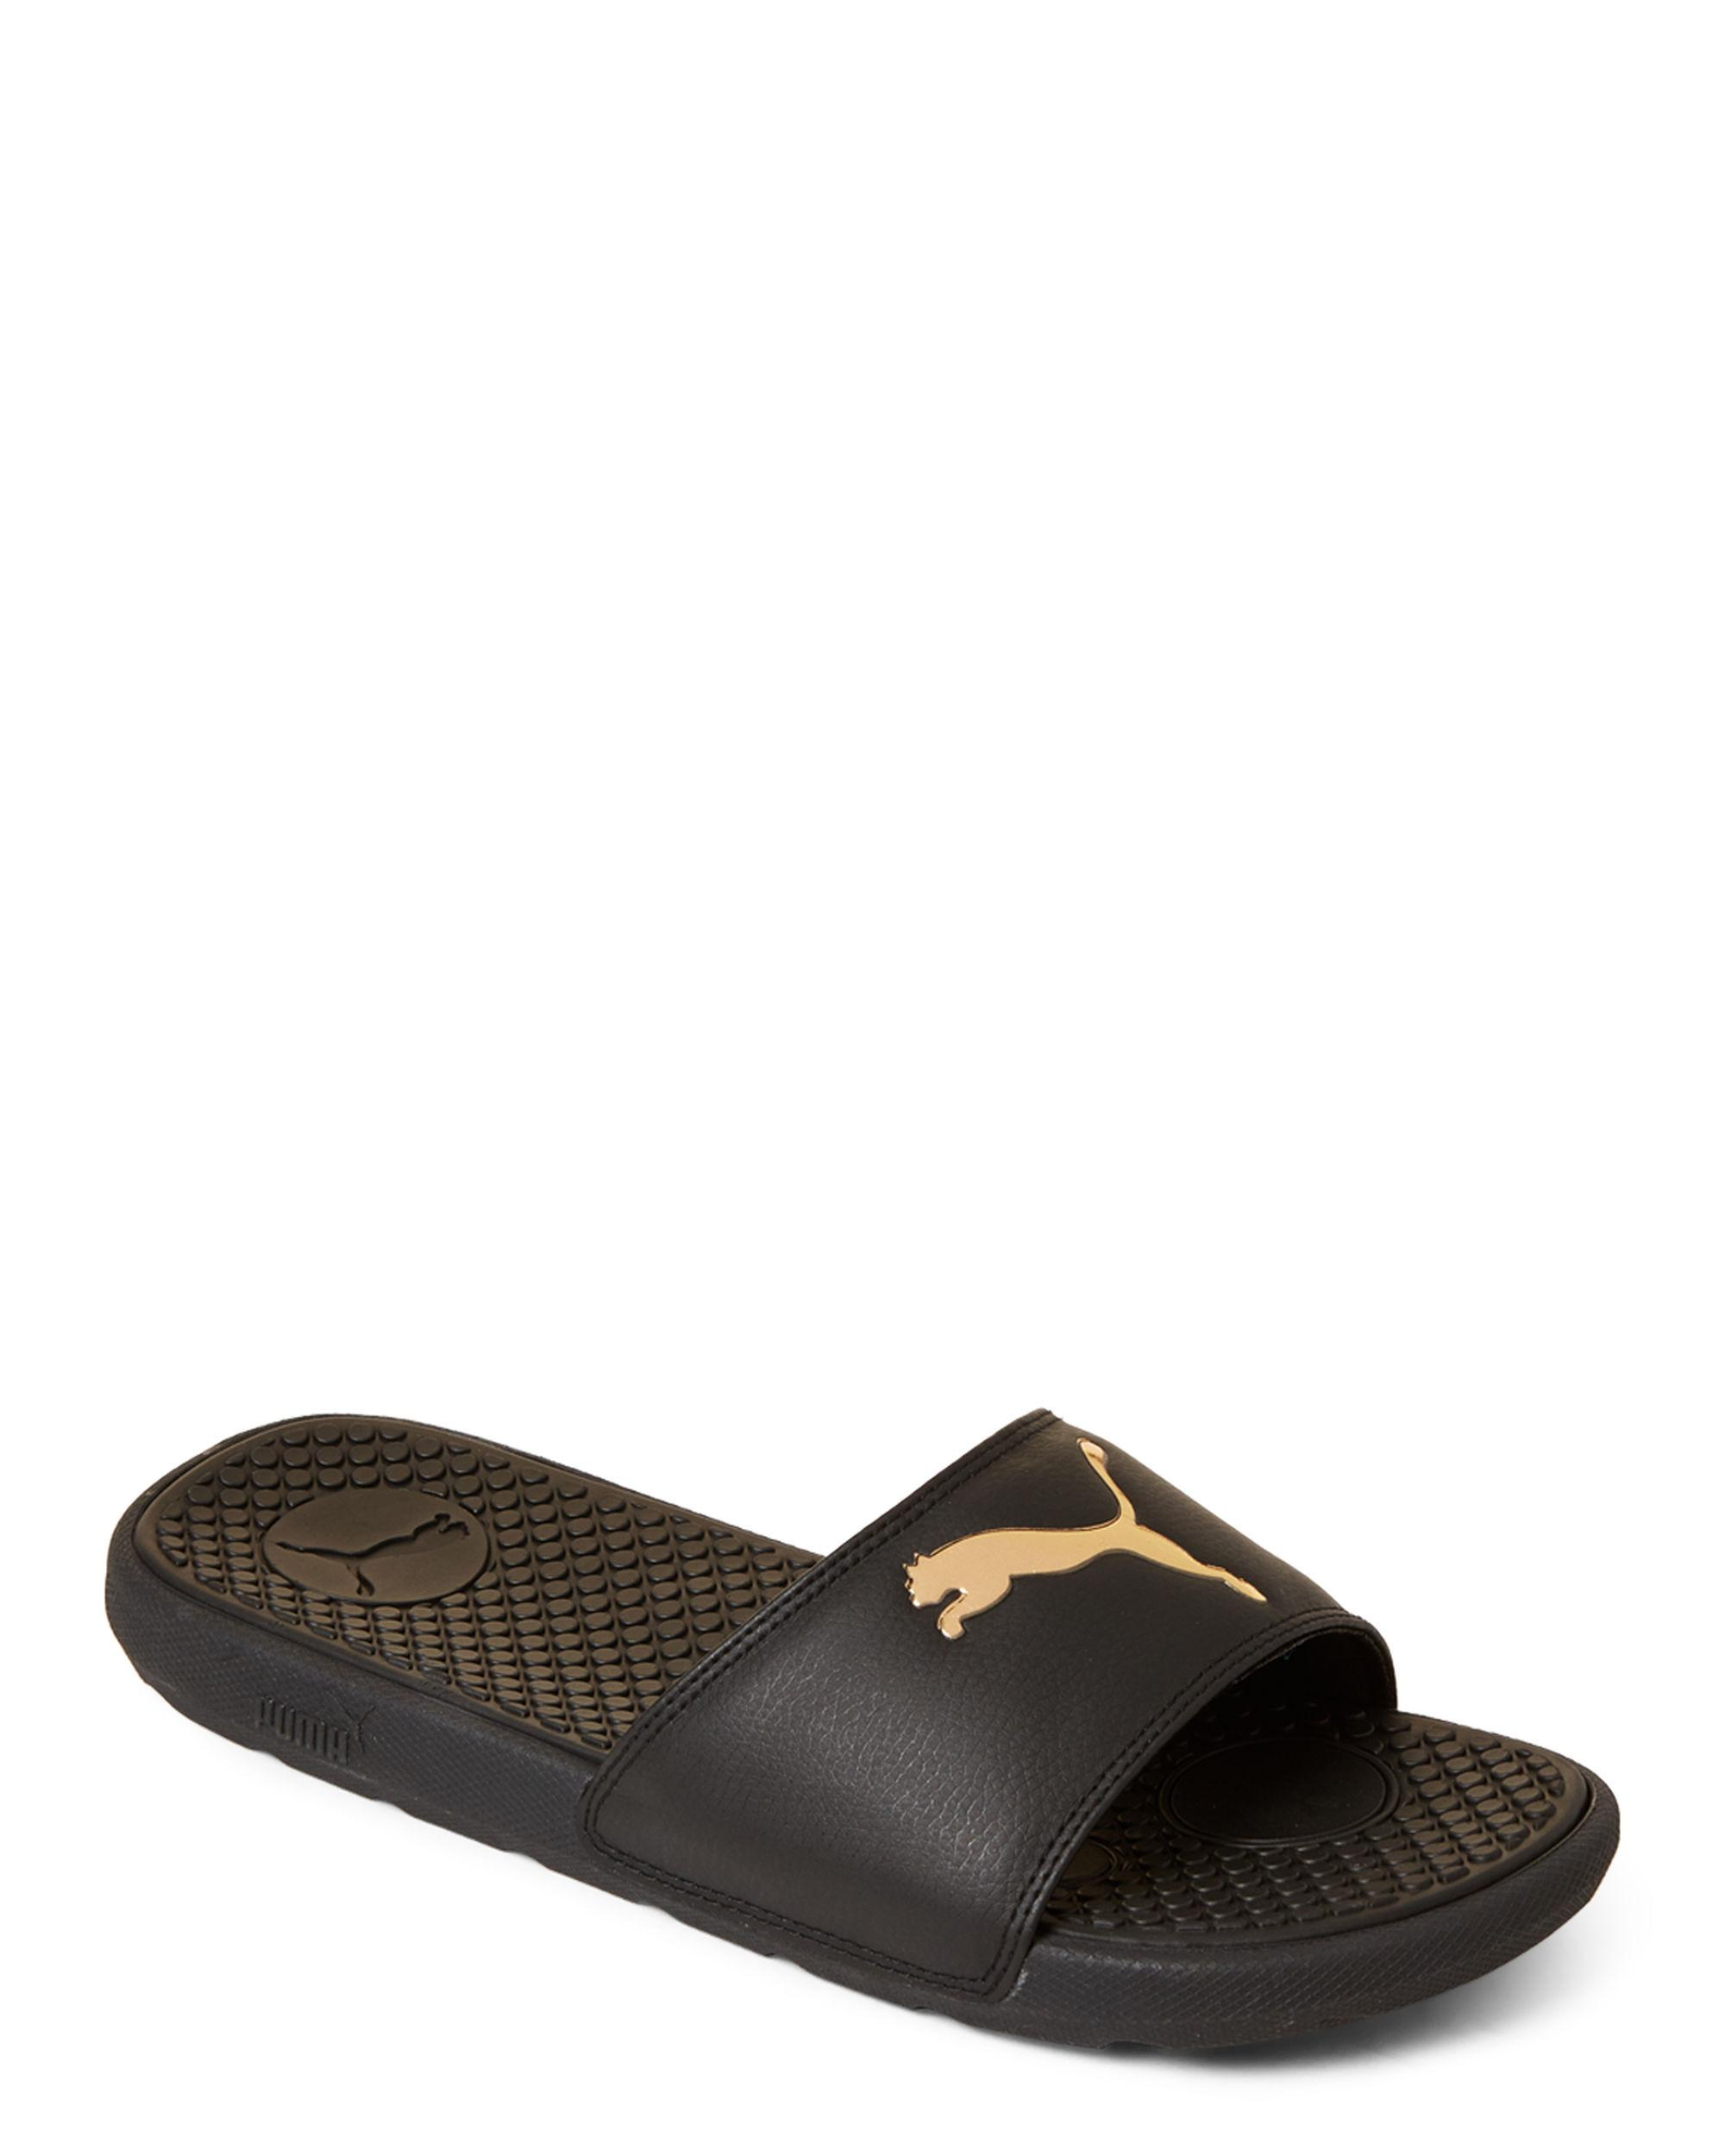 meilleure sélection 30d90 ba133 Women's Black & Gold Cool Cat Sport Slide Sandals